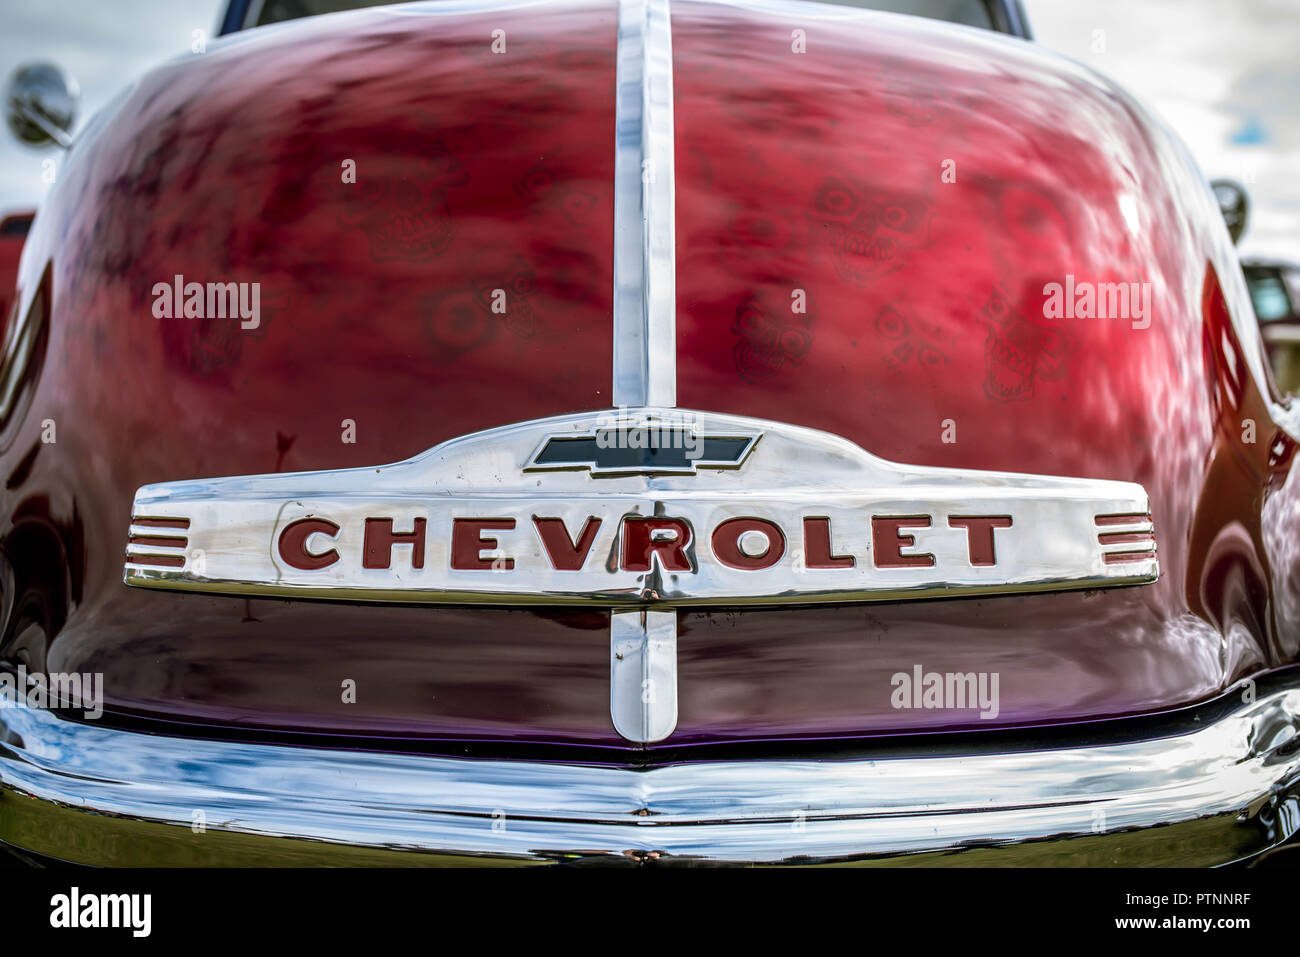 Chevy at Stonham Barns American Car Show 2018 - Stock Image